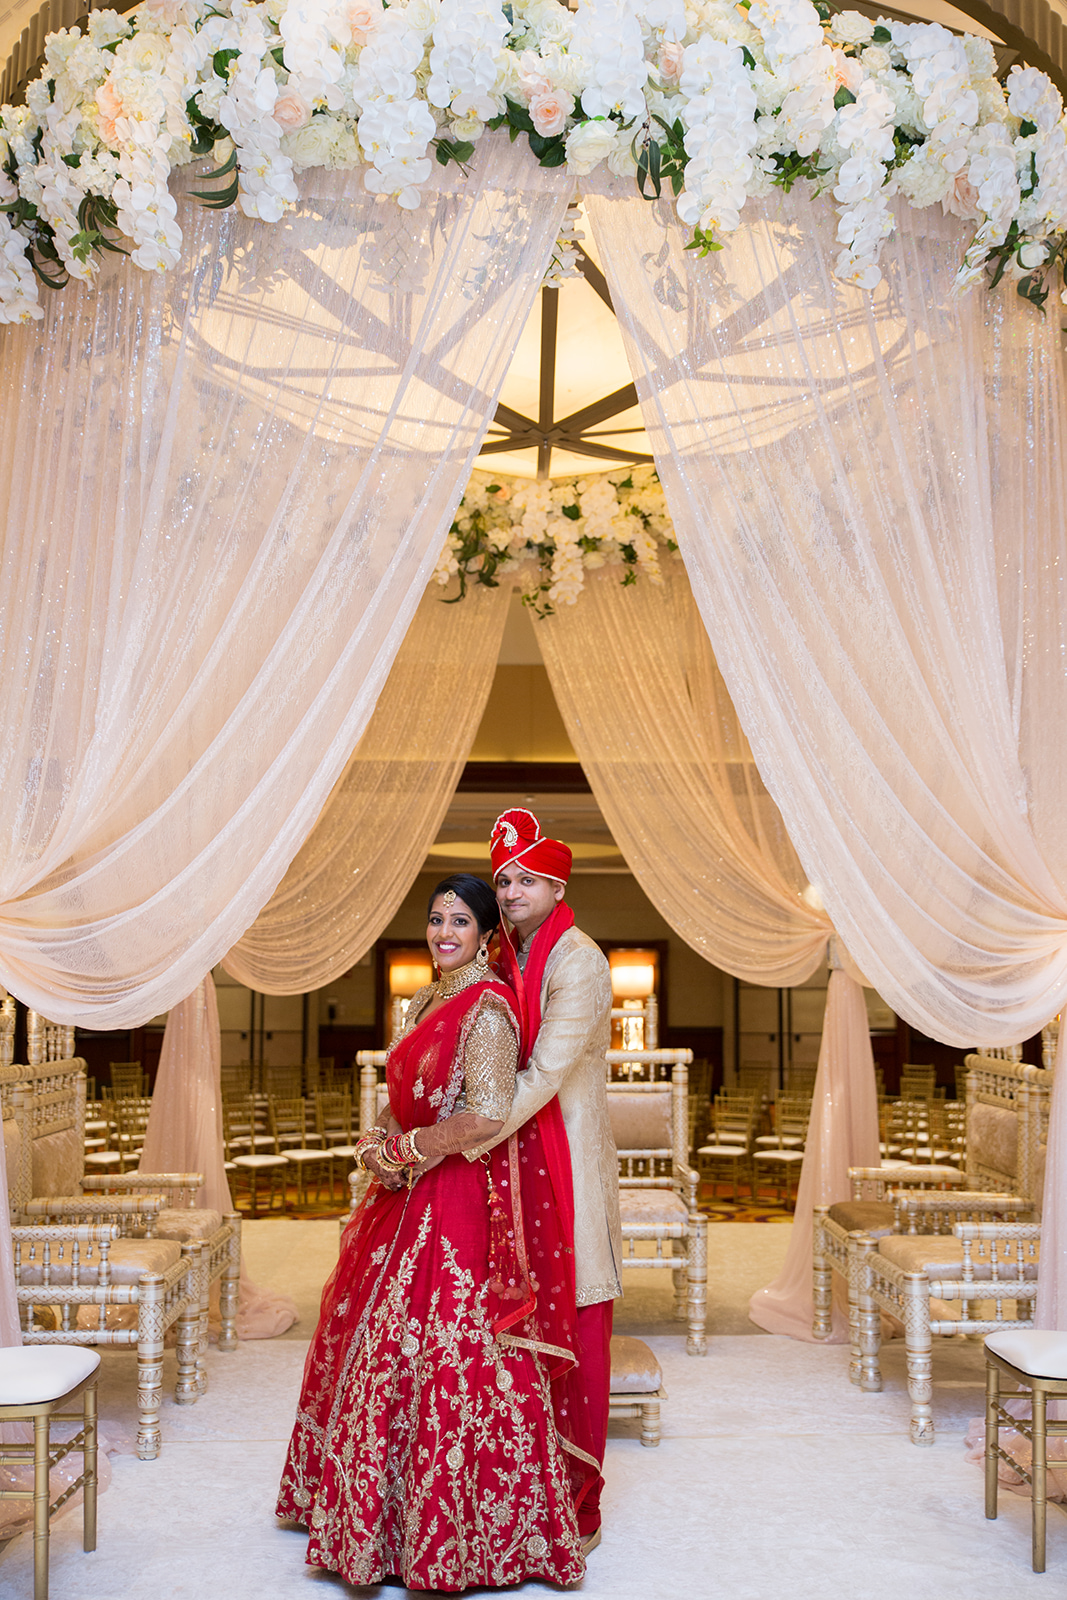 Le Cape Weddings - Swati and Ankur - Sneak Peek -61.jpg